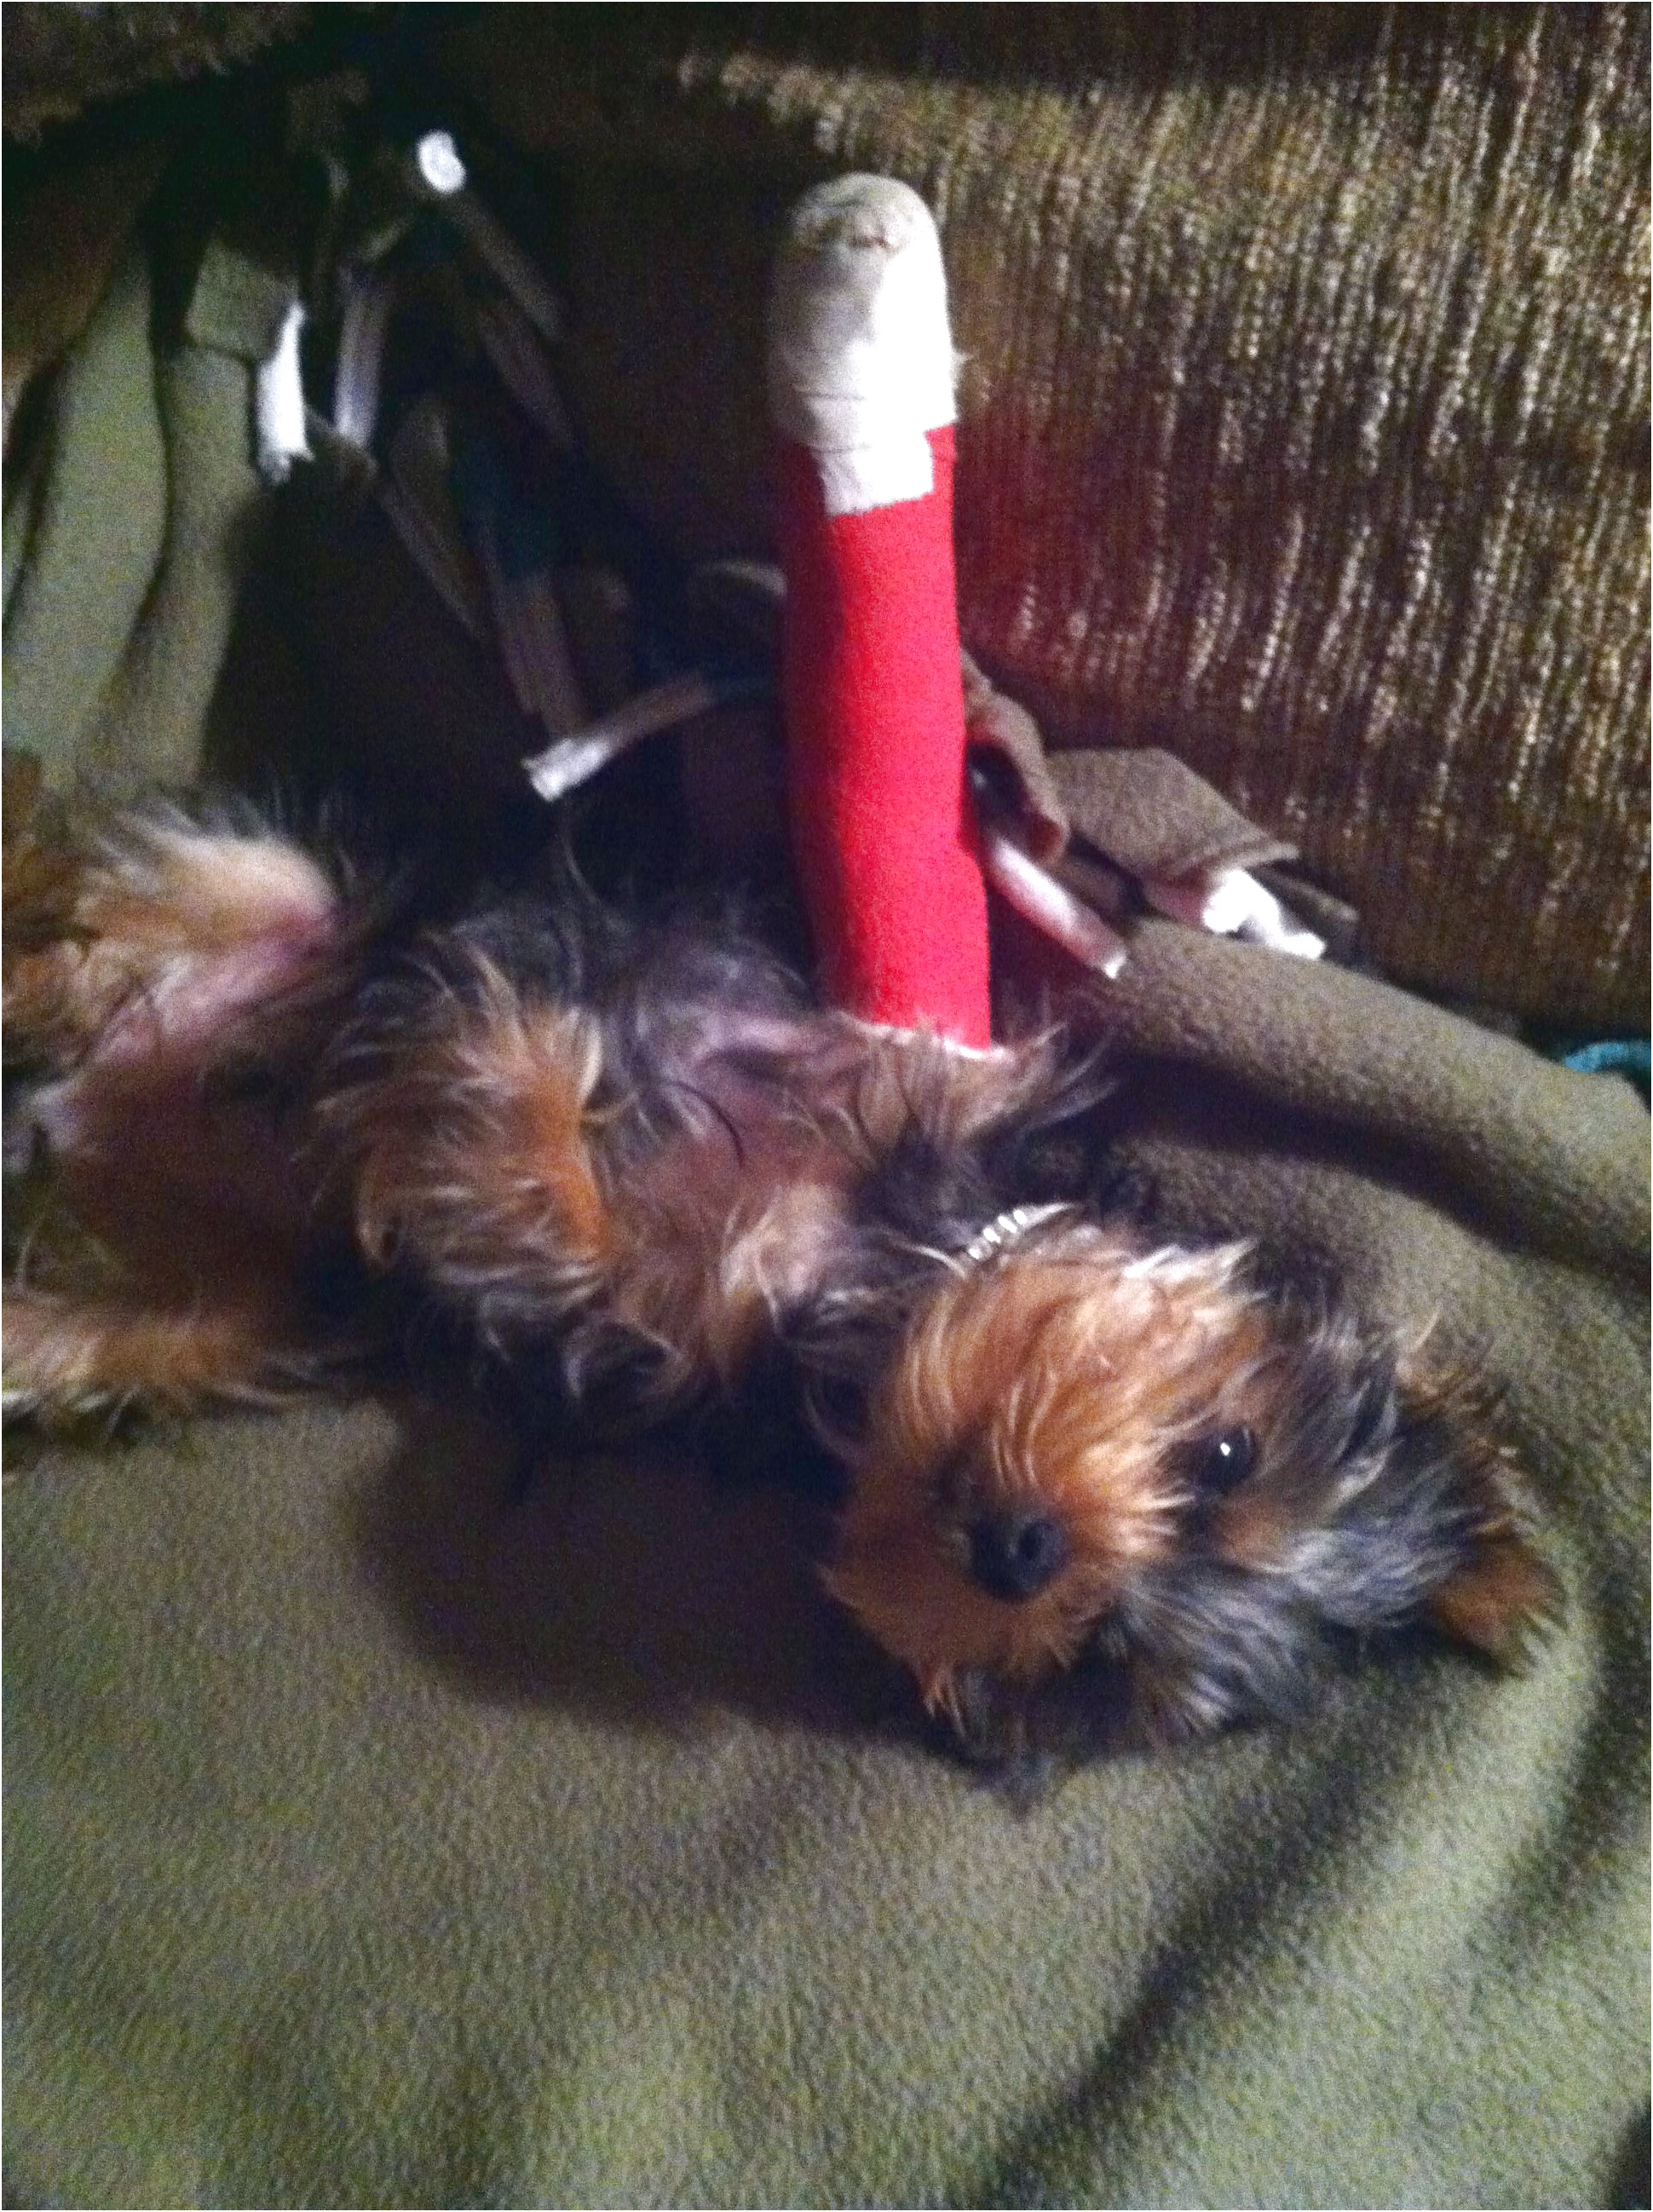 yorkie puppy jumped off couch